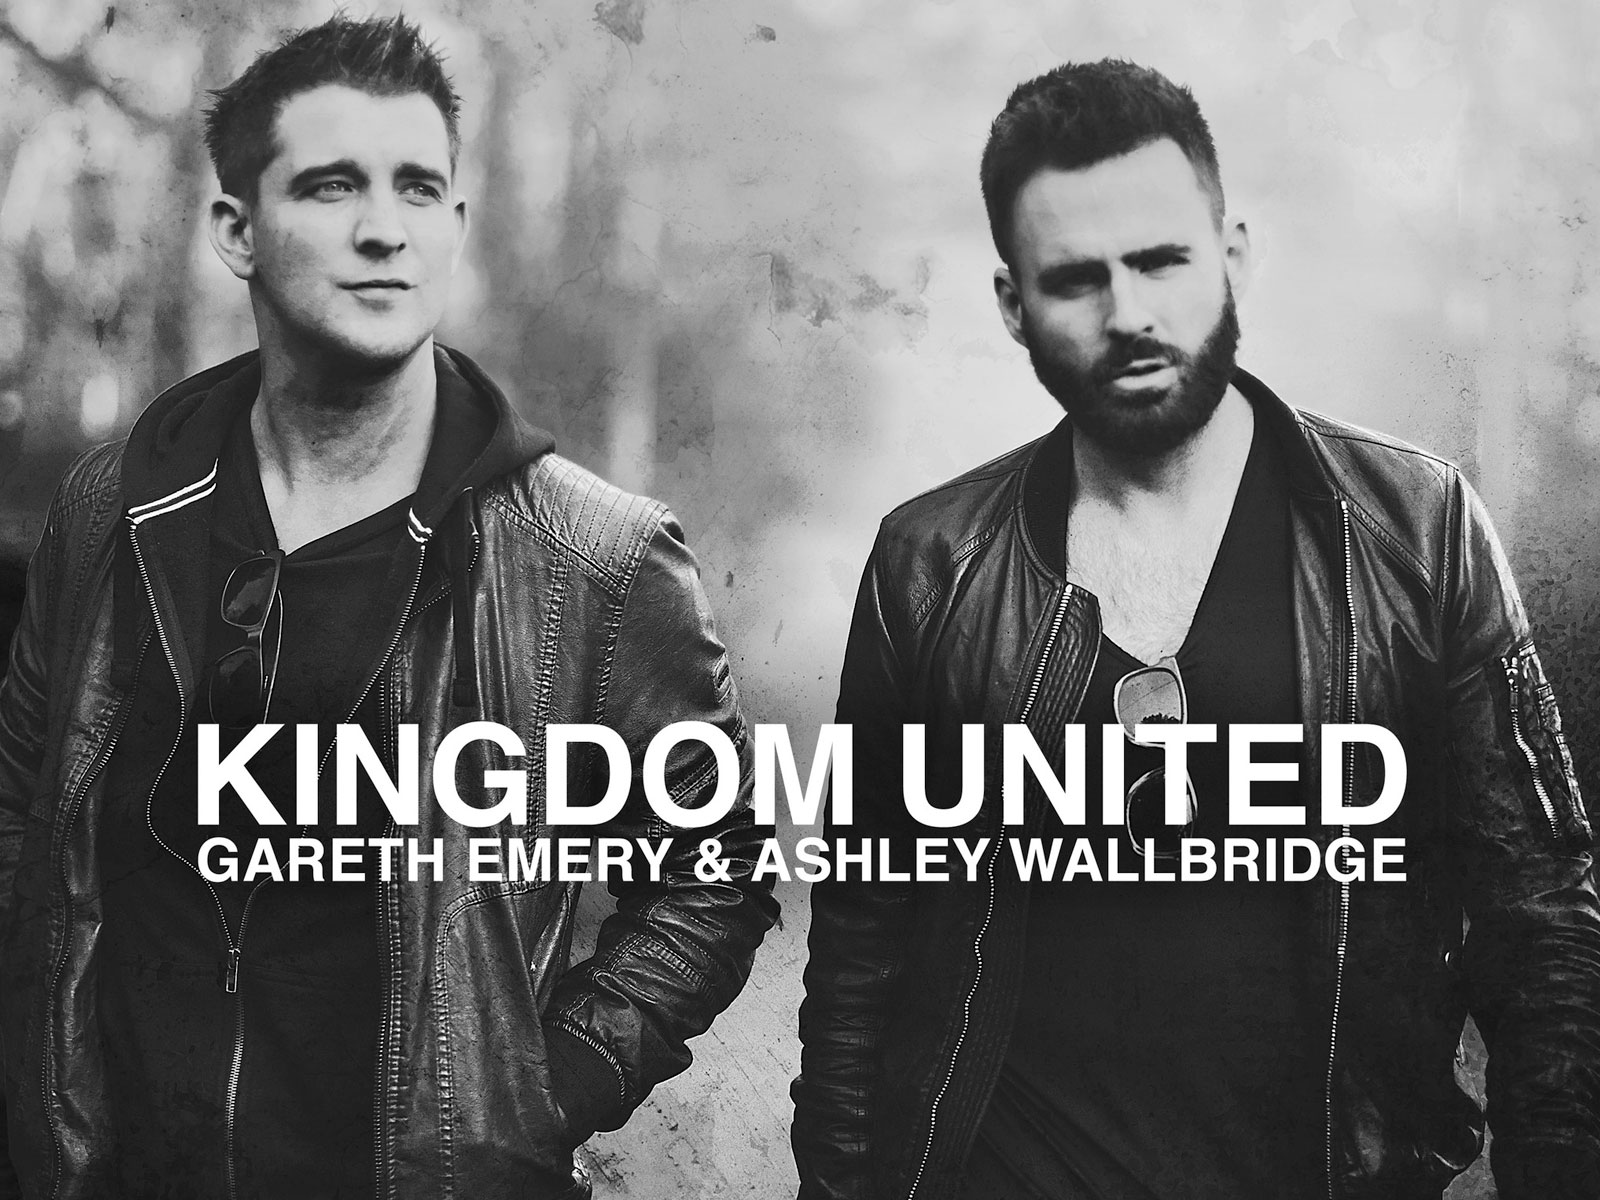 kingdom-united-oz-edm-2019